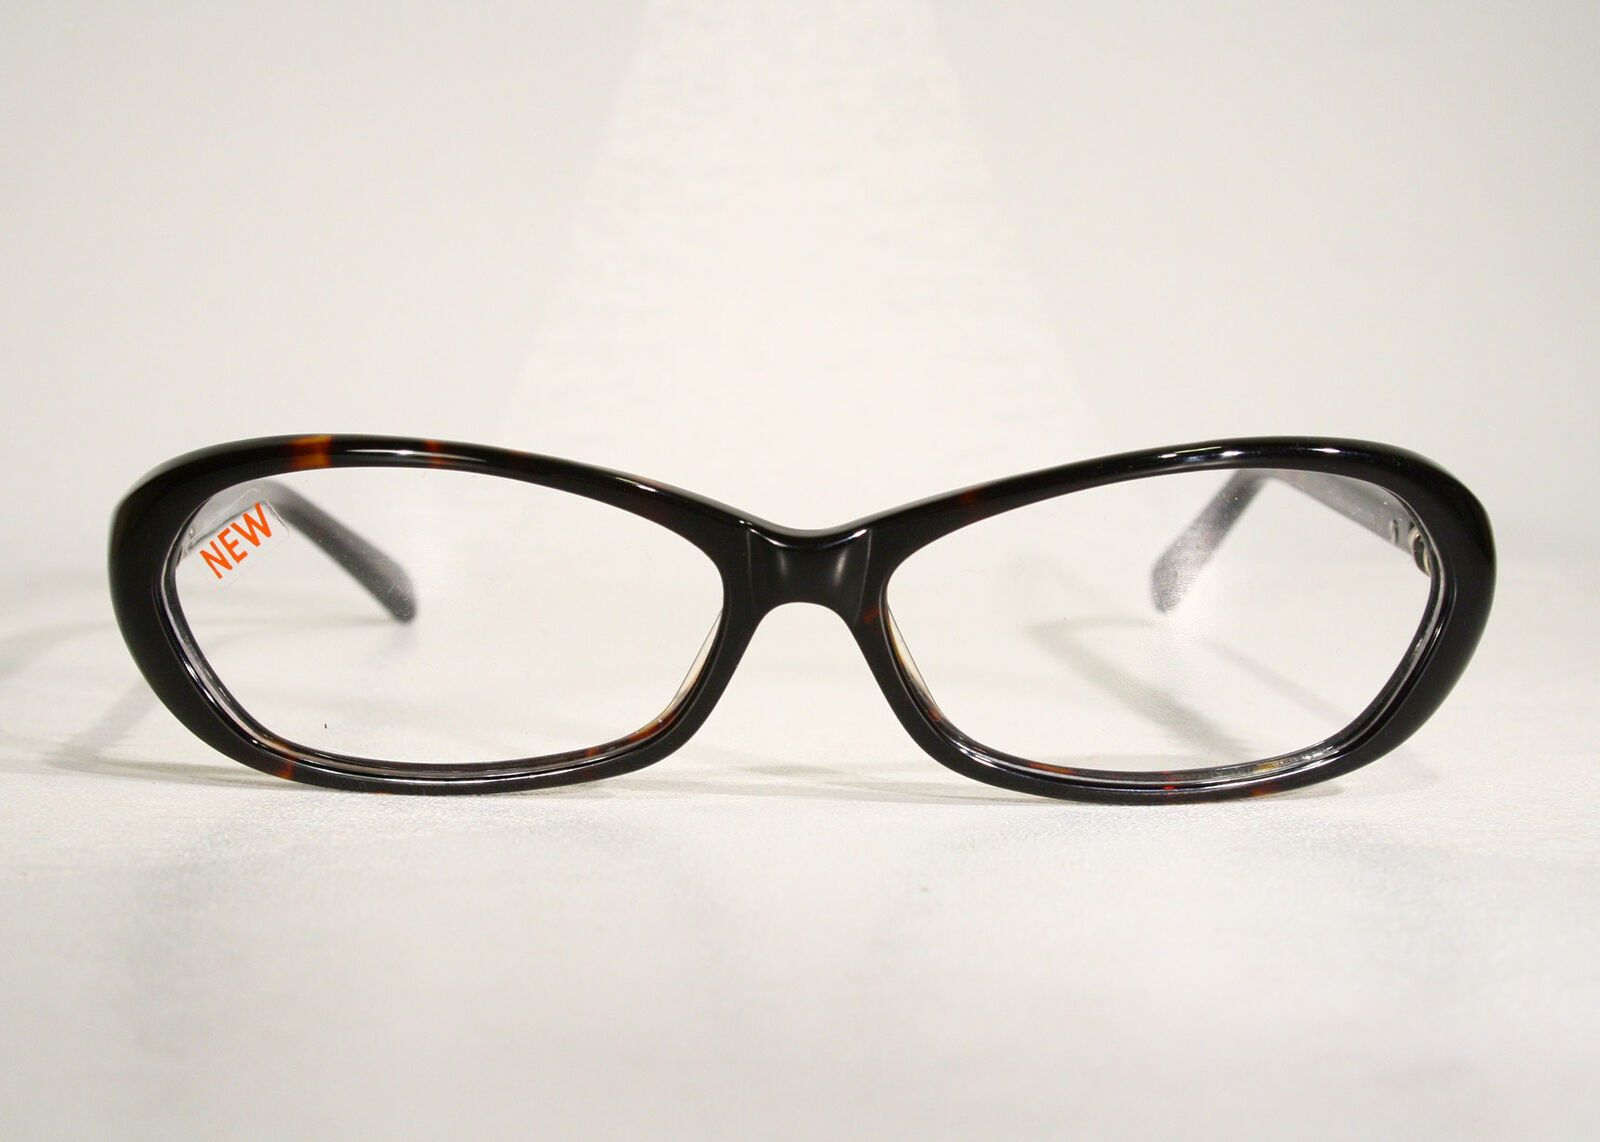 0170f04eec6e Women s New PRIVATE EYES Dark Tortoise Oval Optical Glasses Frames  Eyeglasses   eBay (RipVanW)